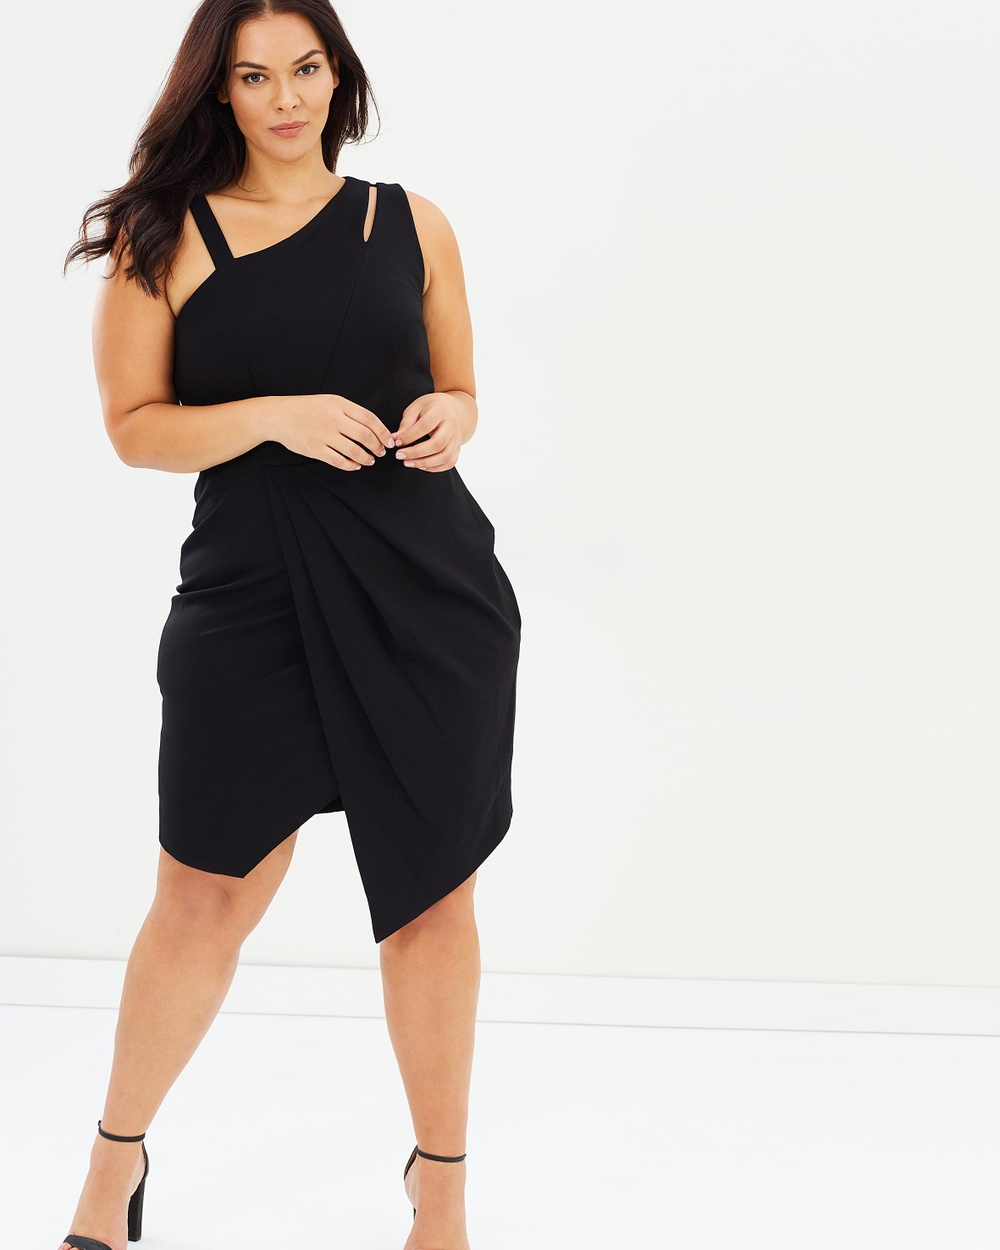 Rebel Wilson x Angels Asymmetrical Cut Out Dress Dresses Black Asymmetrical Cut-Out Dress